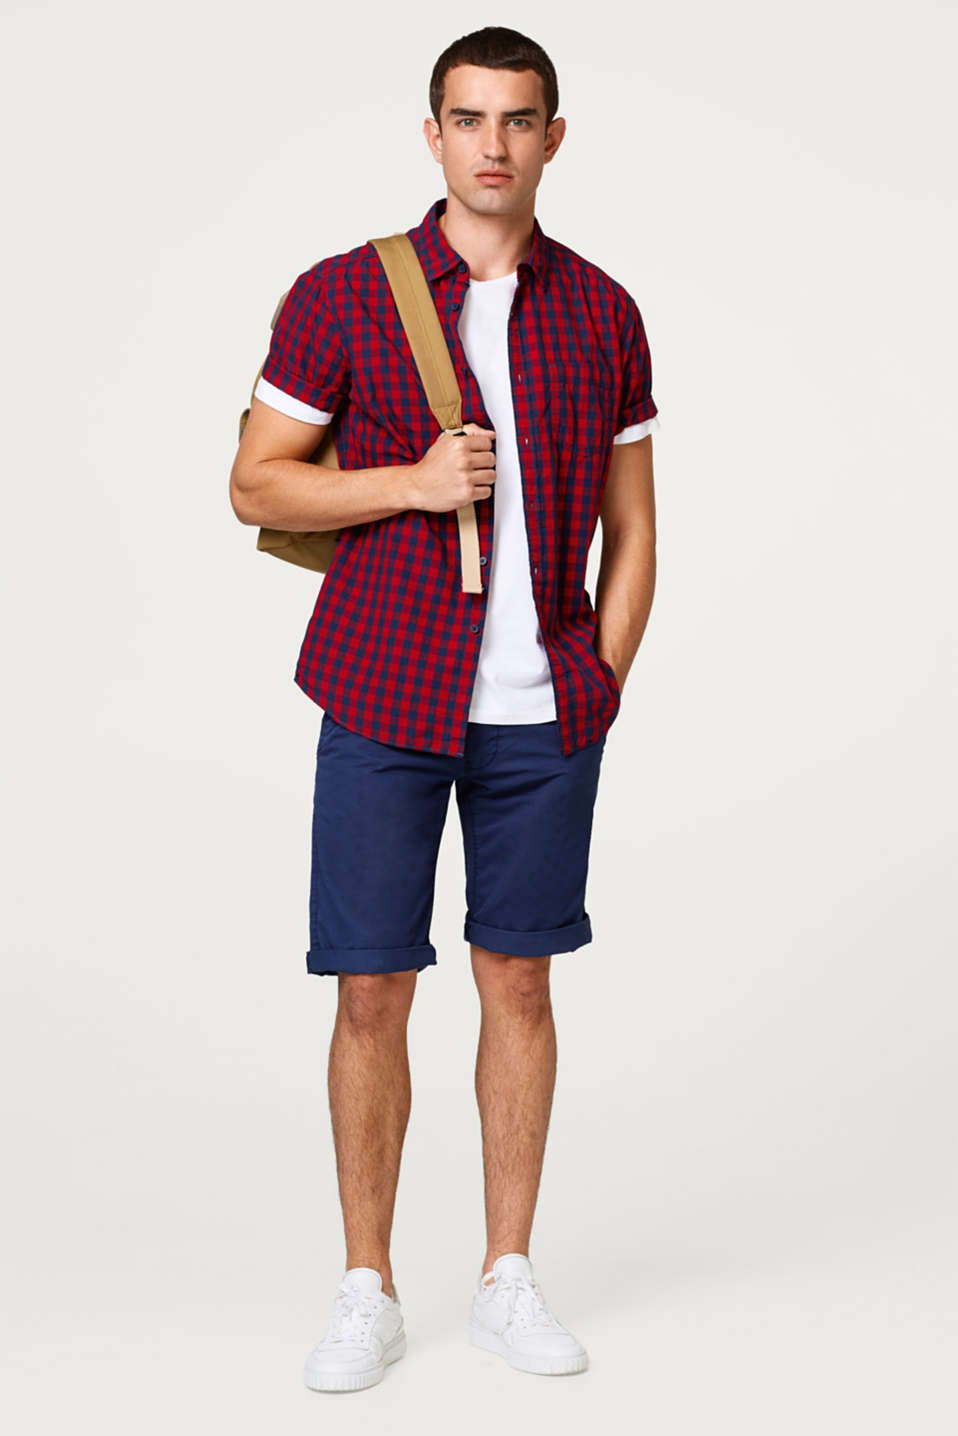 Cotton chino shorts plus woven belt